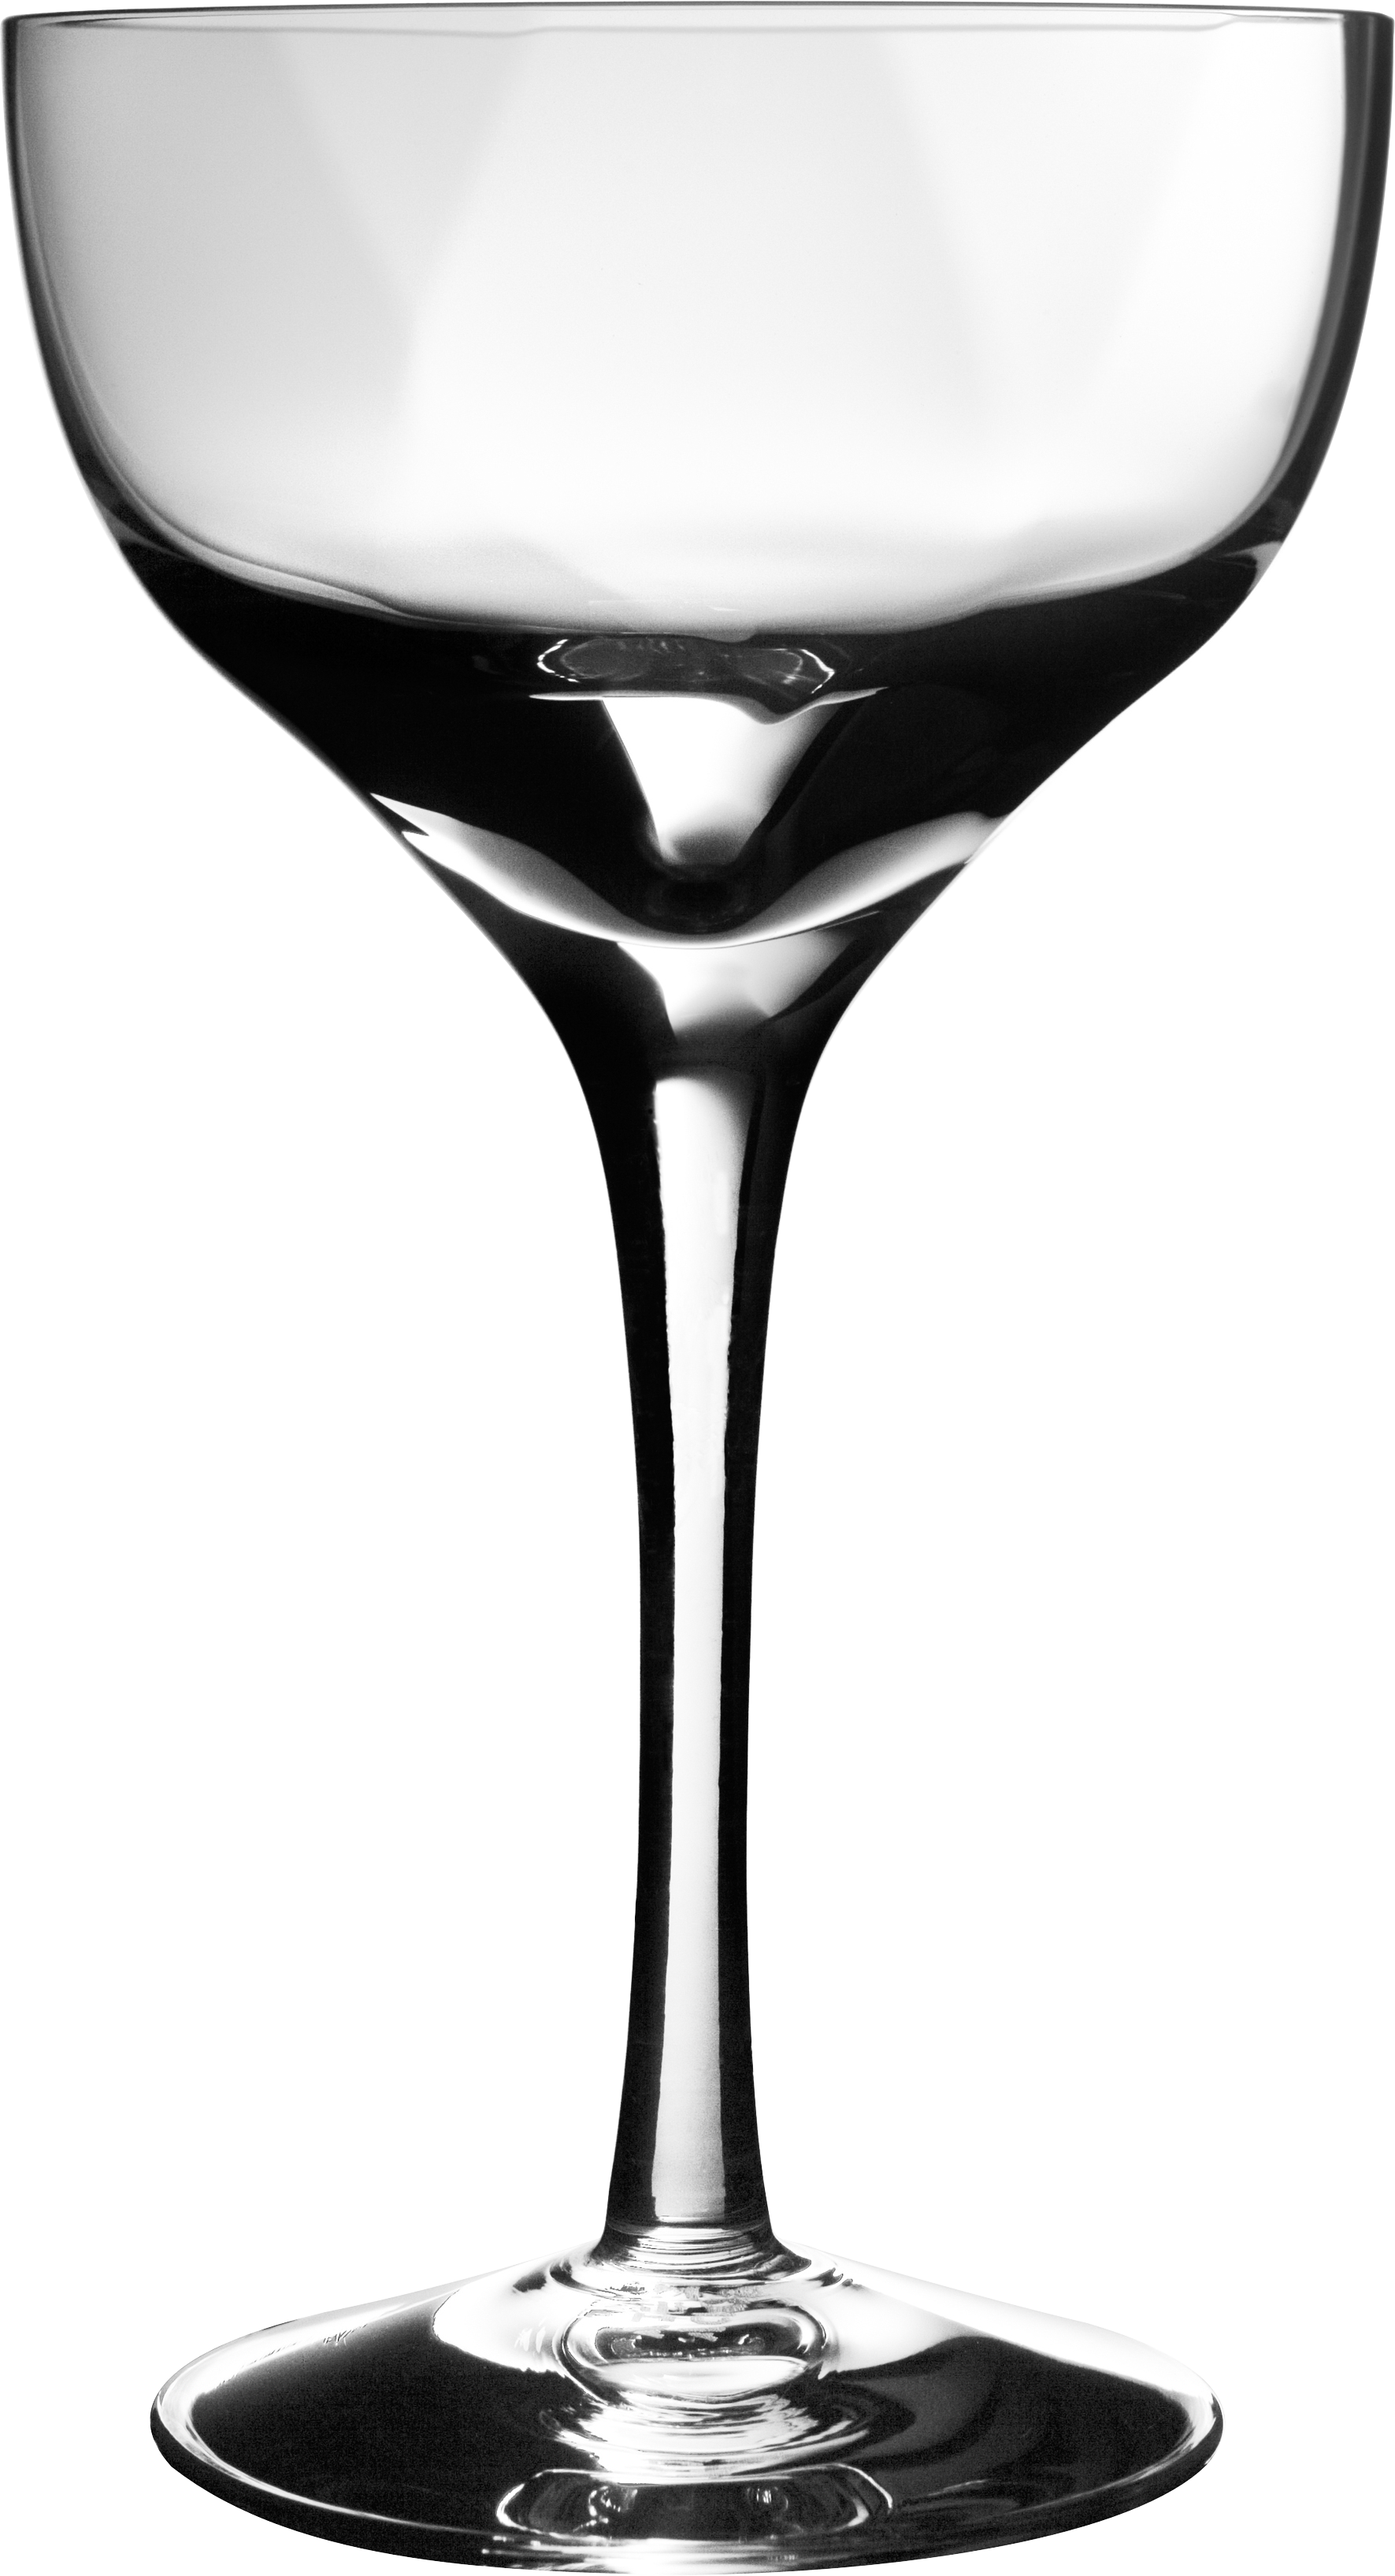 Cat wine glass clipart vector royalty free stock Empty Wine Glass Seven   Isolated Stock Photo by noBACKS.com vector royalty free stock